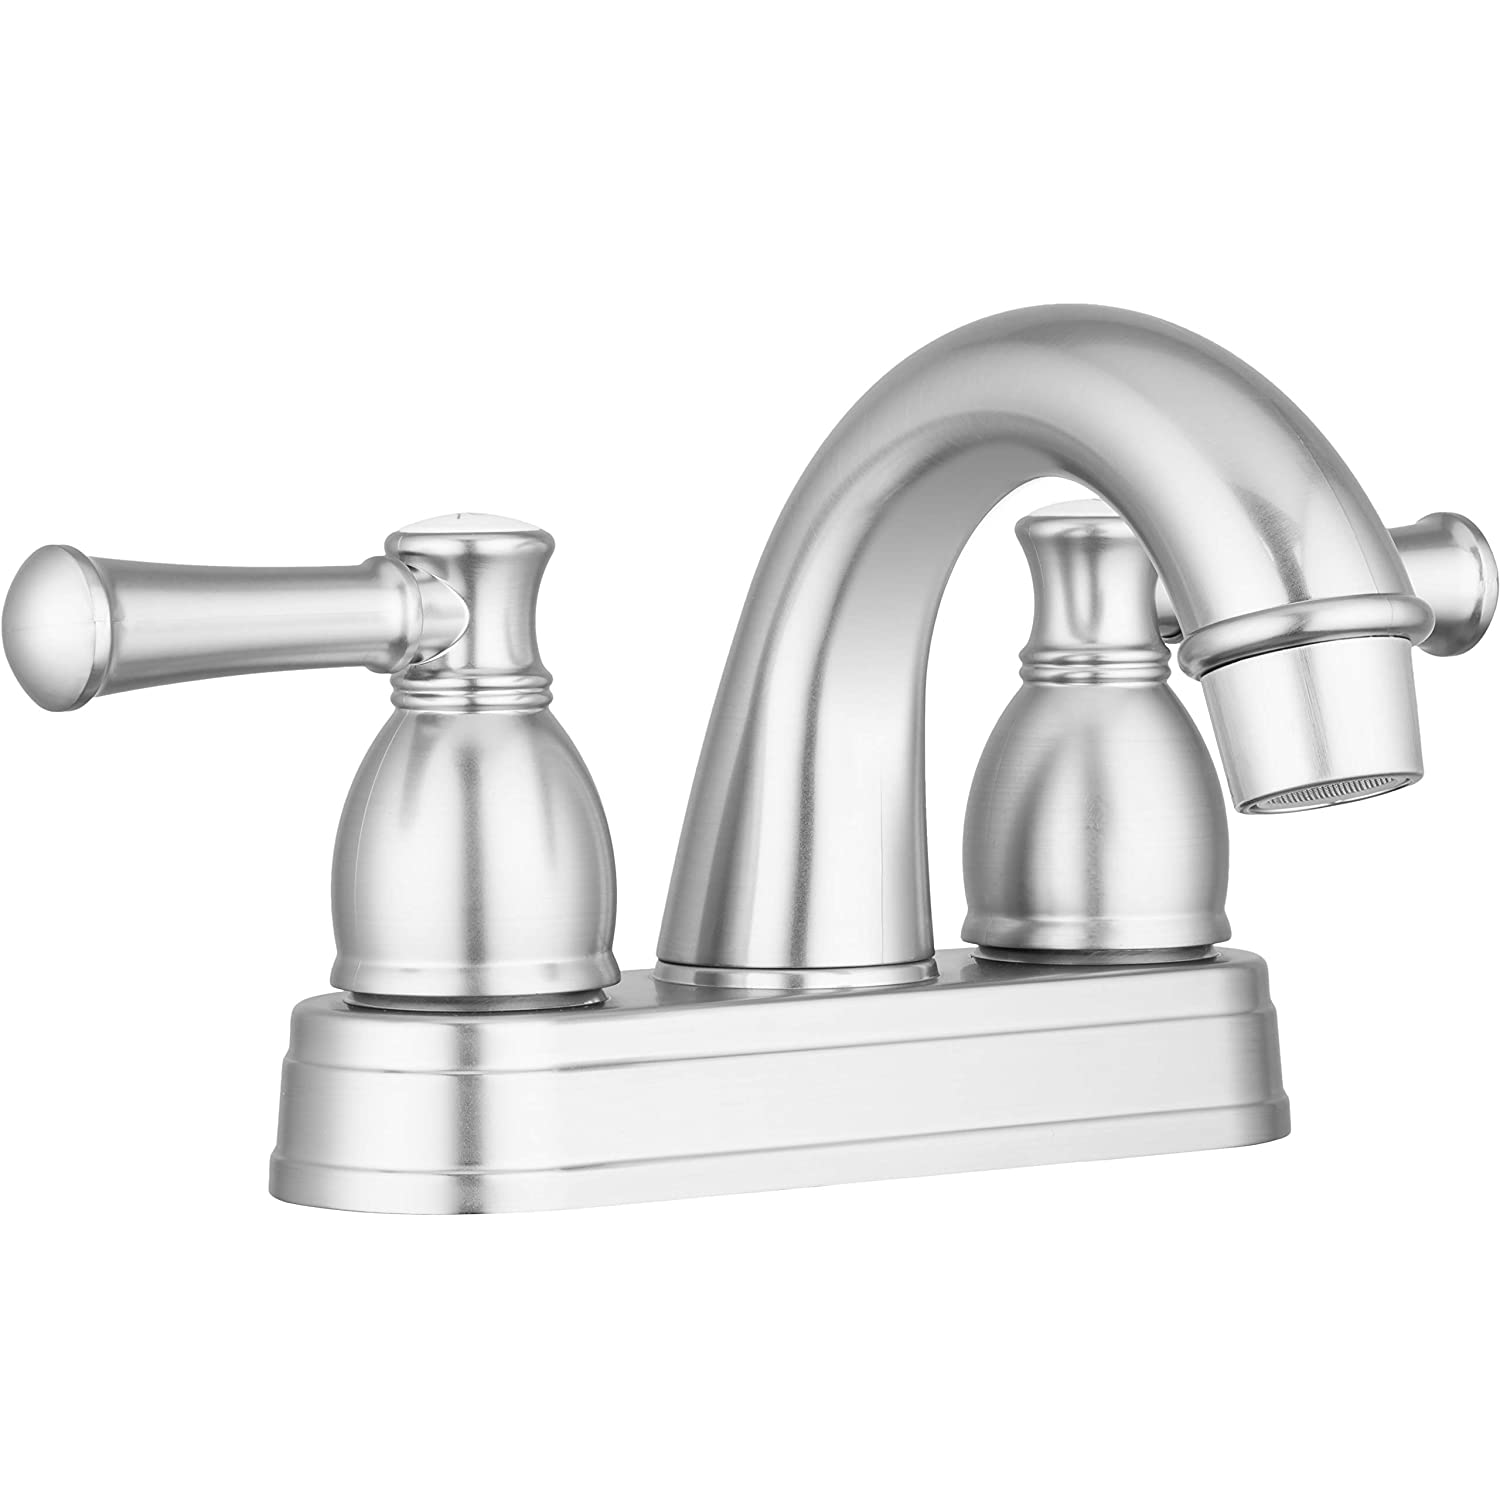 Dura Faucet RV Bathroom Faucet with Arced Spout and Bell Style Two Lever Operation for all Recreational Vehicles, Travel Trailers, Motorhomes, and 5th Wheels (Brushed Satin Nickel)